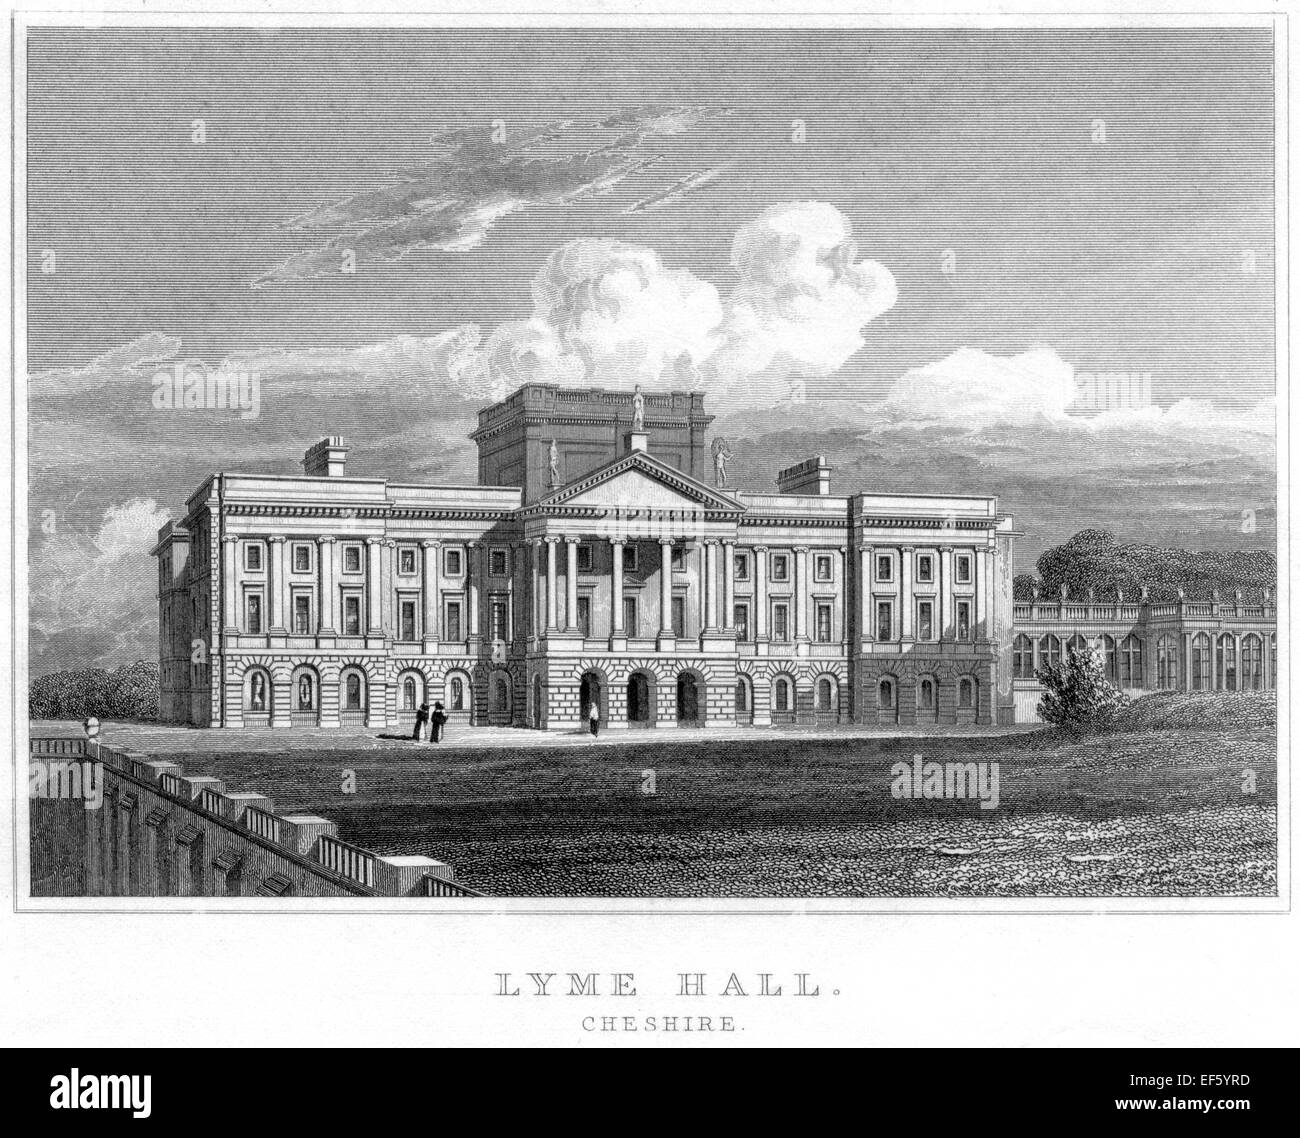 An engraving of Lyme Hall, Cheshire scanned at high resolution from a publication printed in 1830. - Stock Image